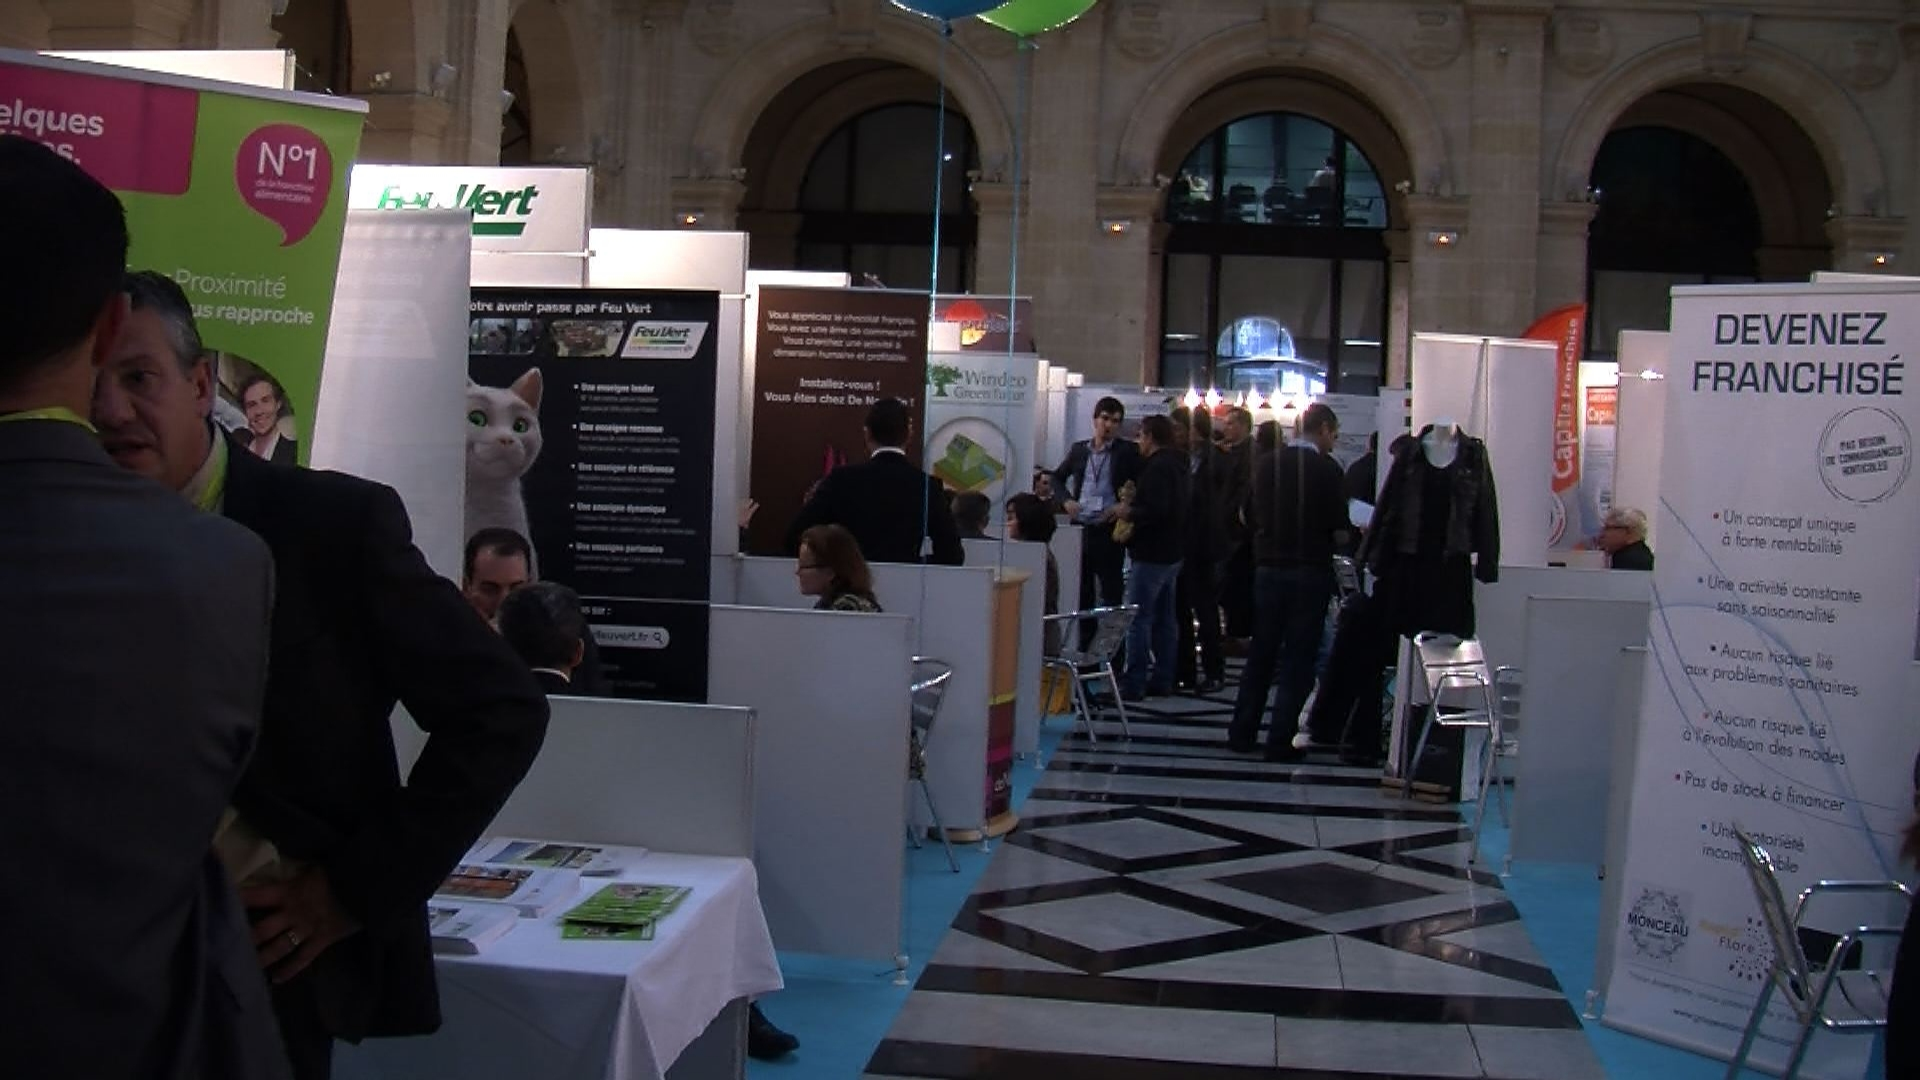 economie marseille salon top franchise